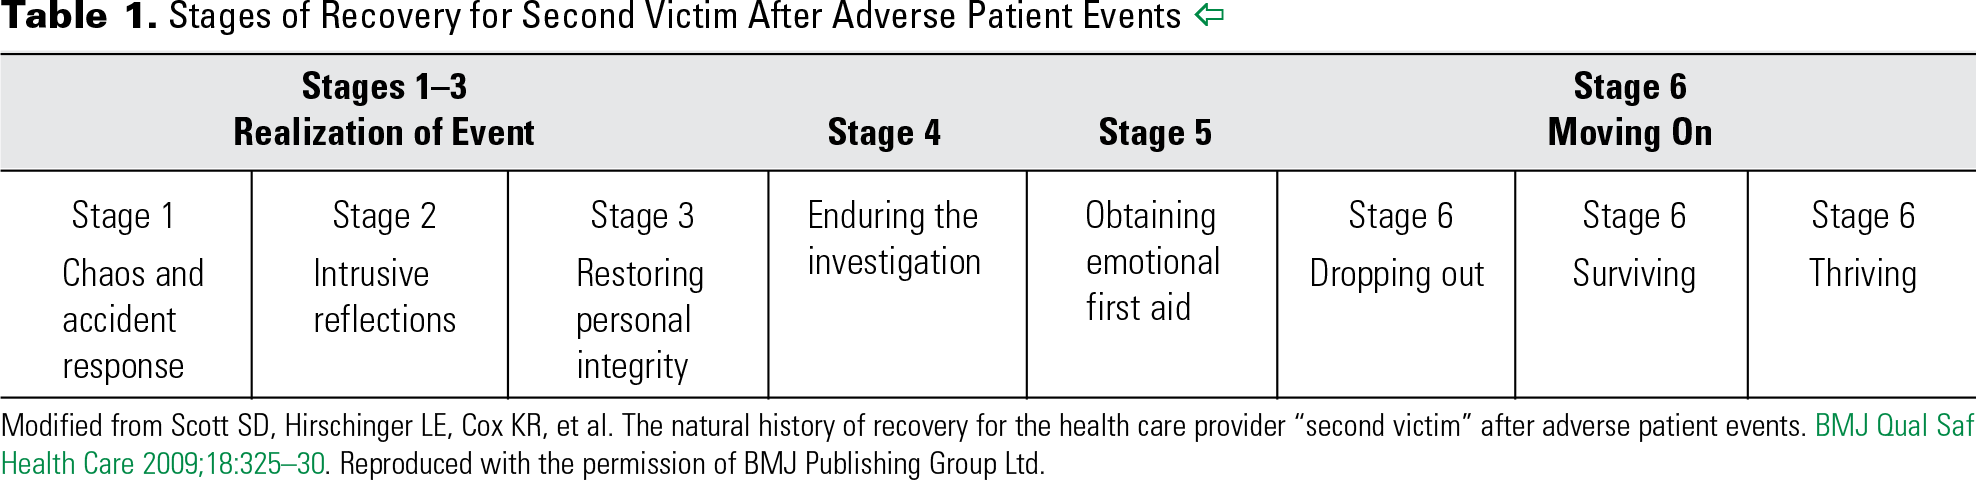 Table 1. Stages of Recovery for Second Victim After Adverse Patient Events